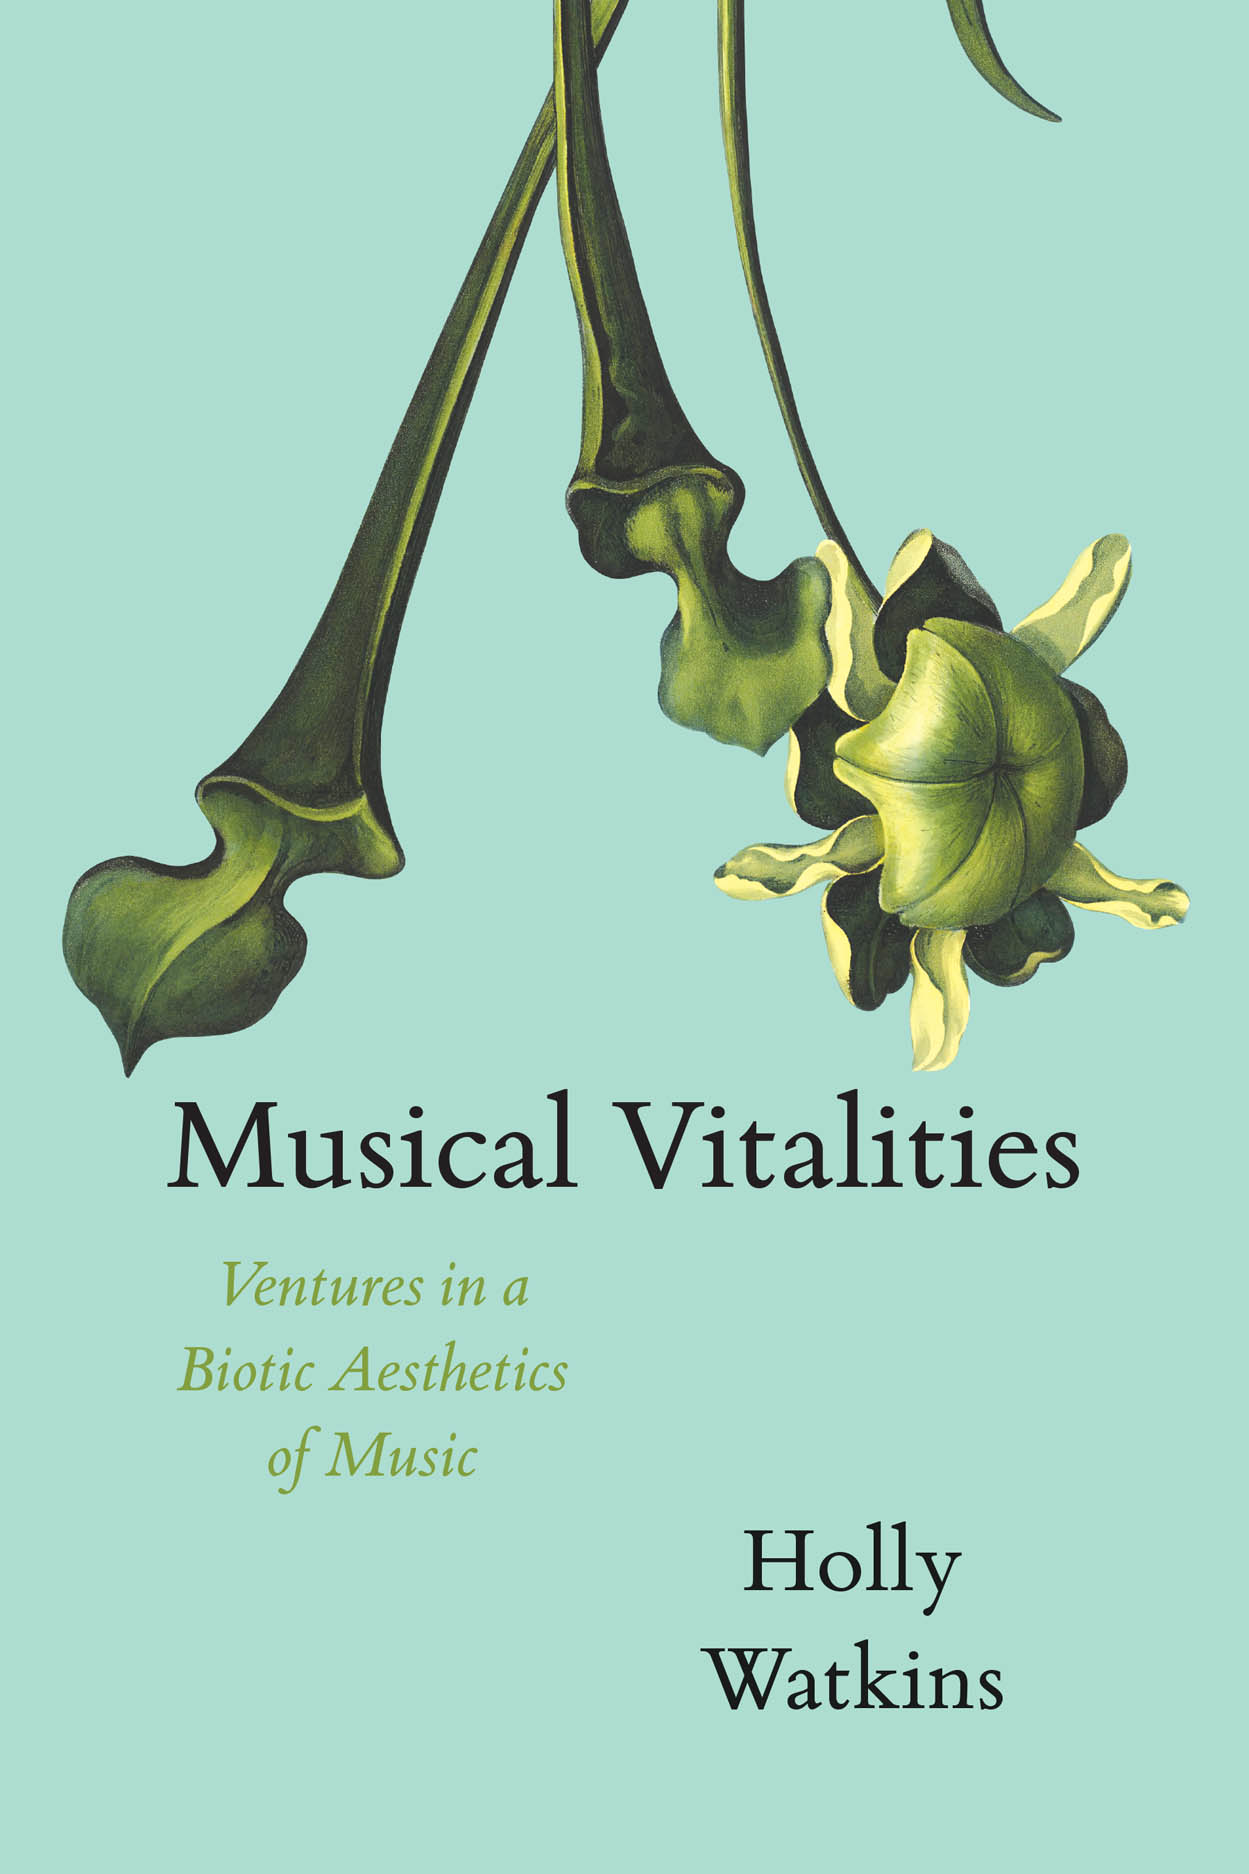 Musical Vitalities: Ventures in a Biotic Aesthetics of Music